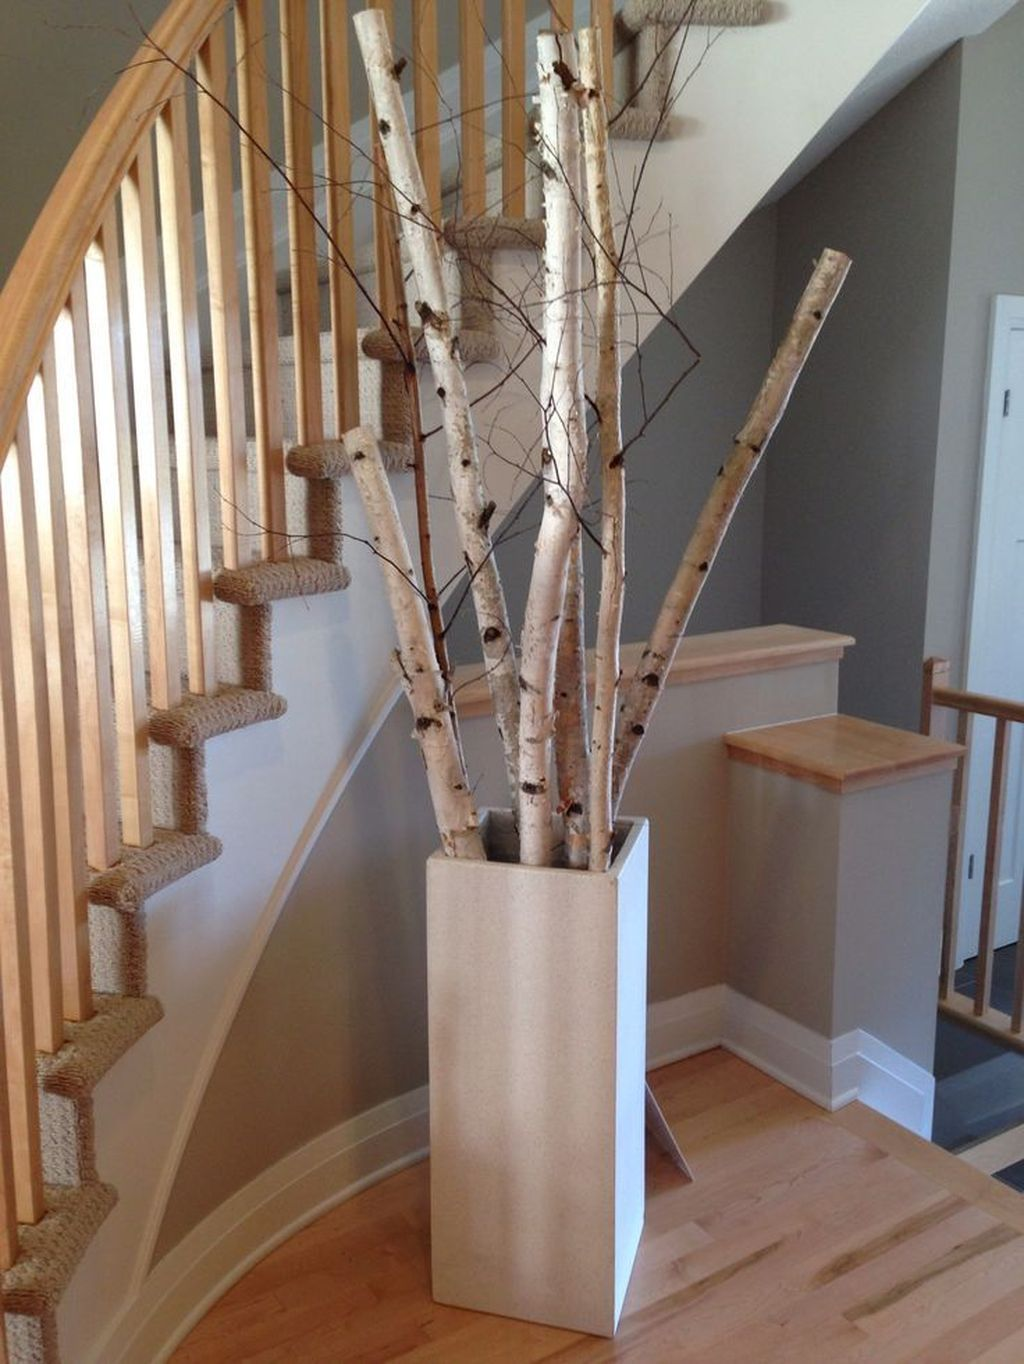 Pin By Trend4homy On Trending Decoration In 2019: Birch Tree Decor, Tree Branch Decor, Branch Decor